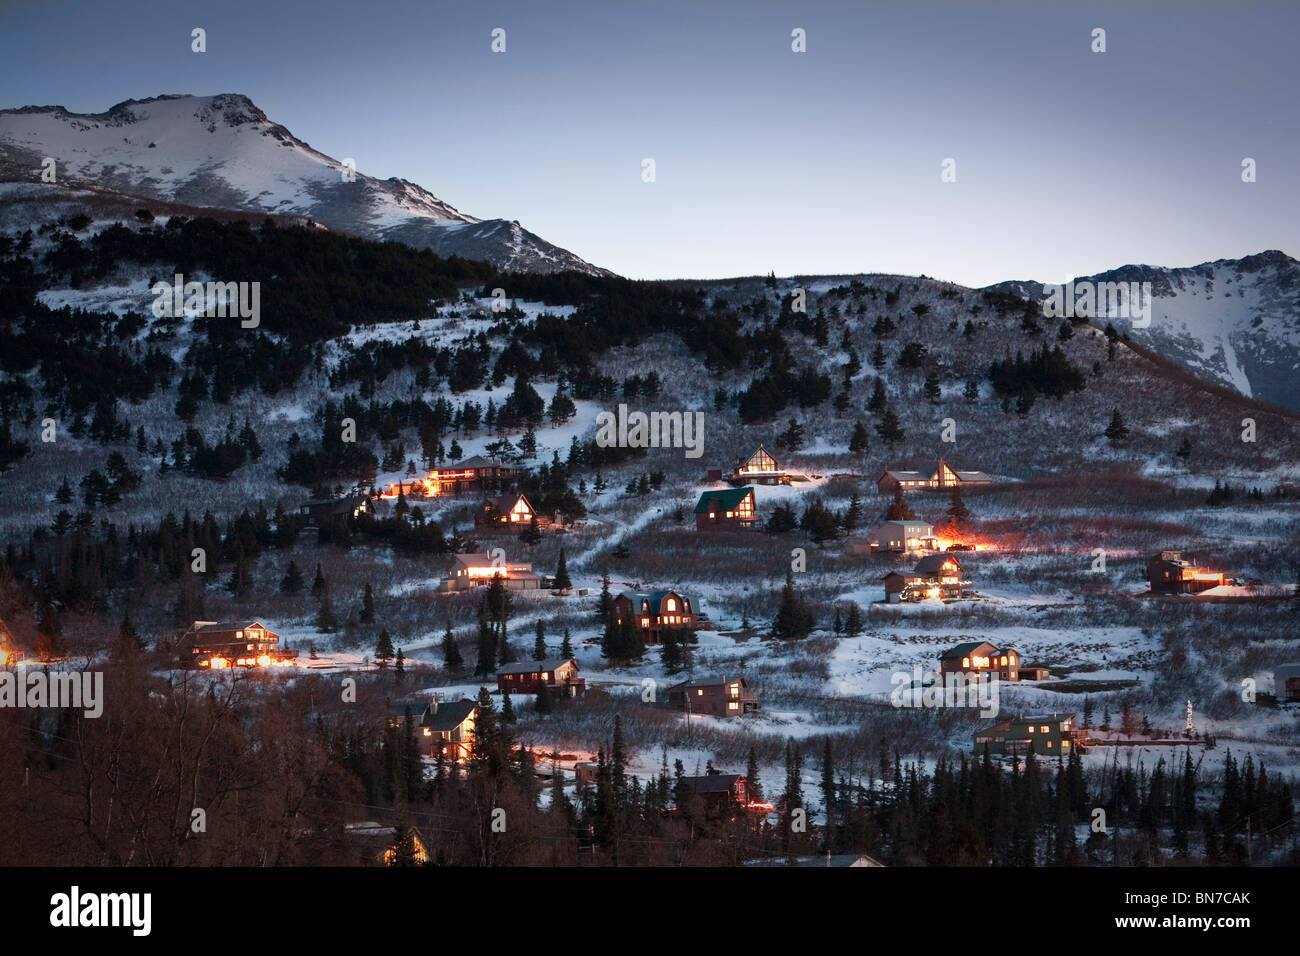 Winter view of hillside homes with lit interiors at dusk with Chugach Mountains in the background, Anchorage, Alaska Stock Photo